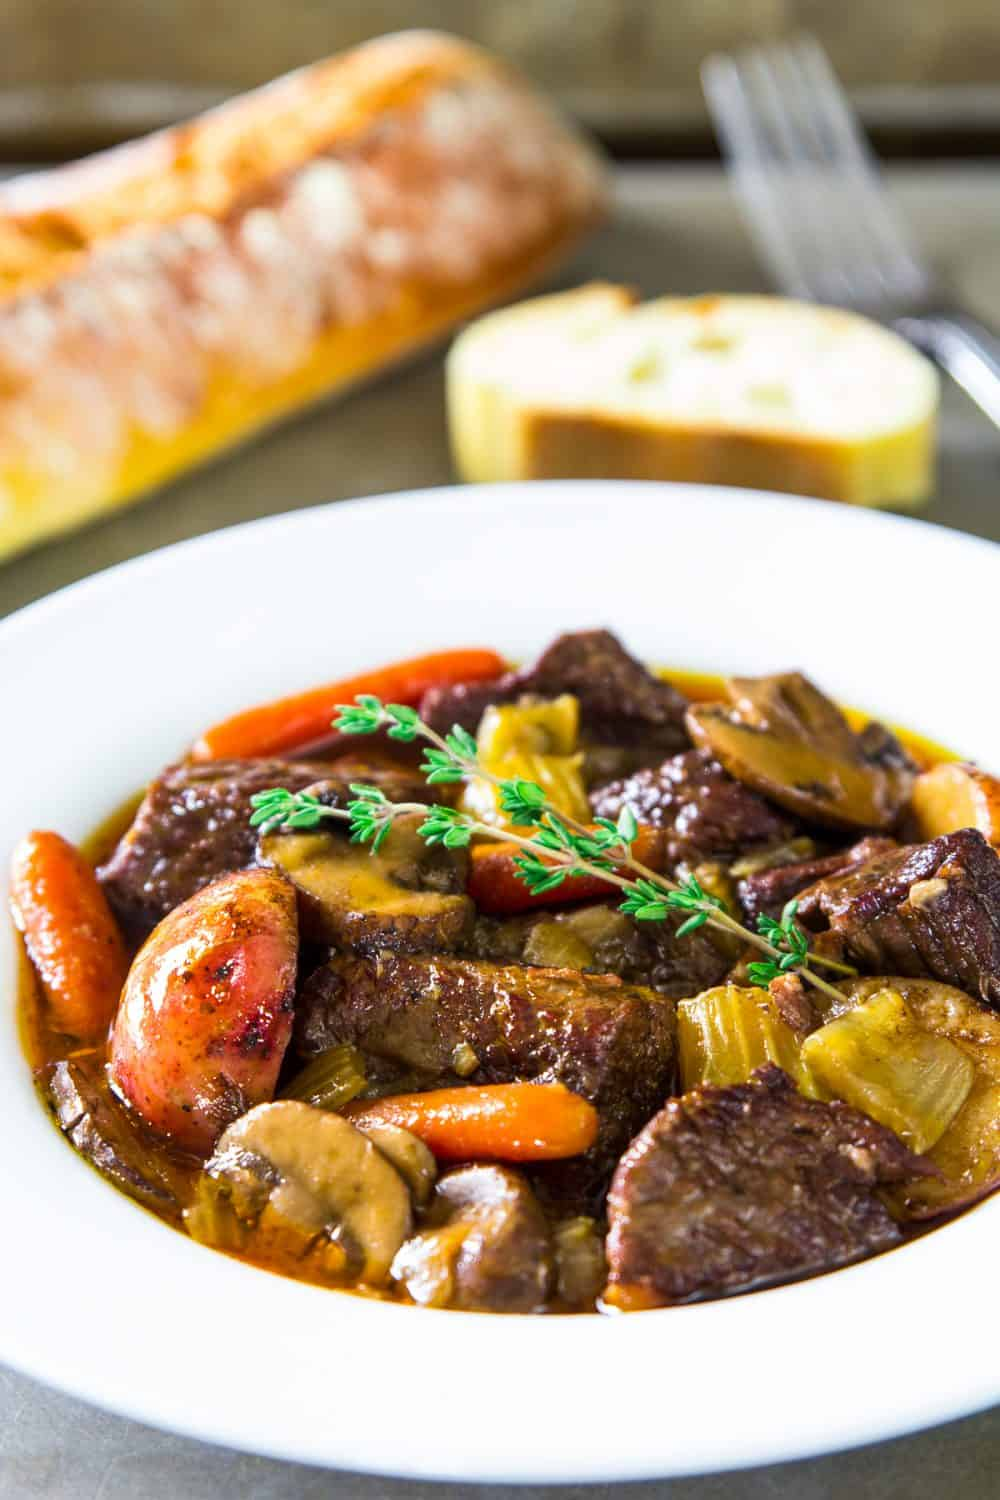 beef stew in a white bowl with fresh thyme on top and french bread beside it